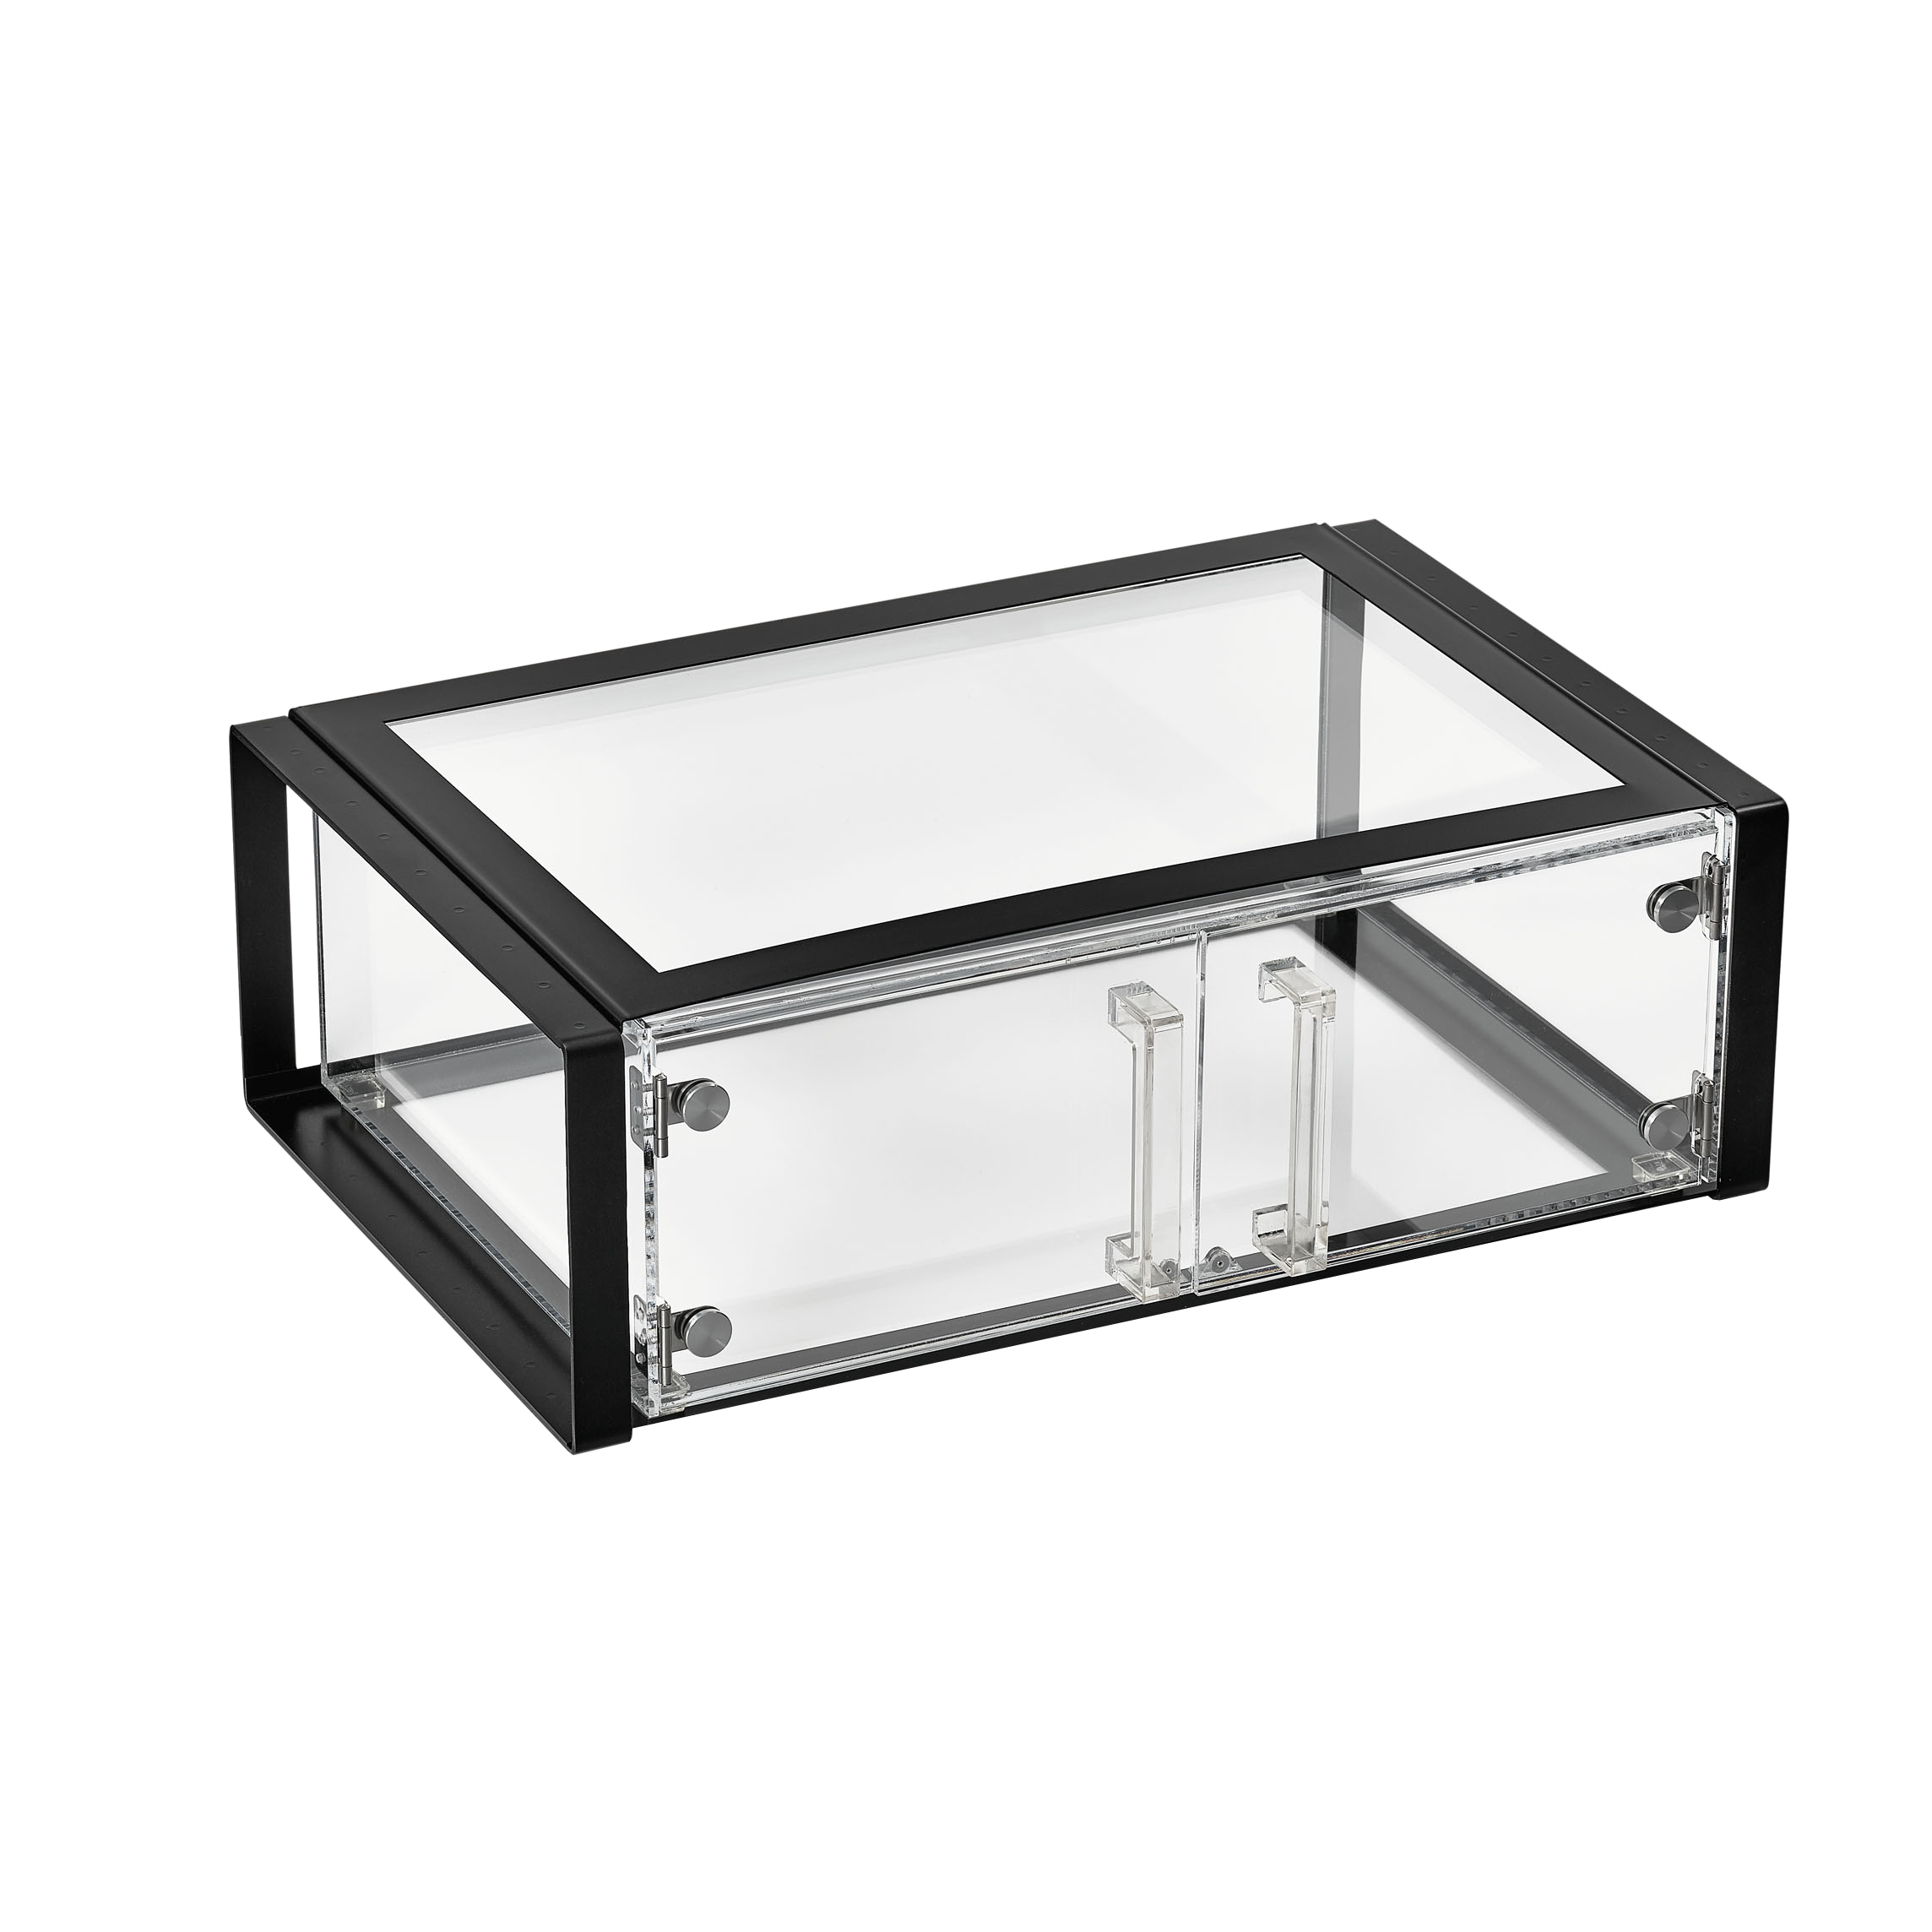 Vollrath SBC11F-06 display case, non-refrigerated countertop